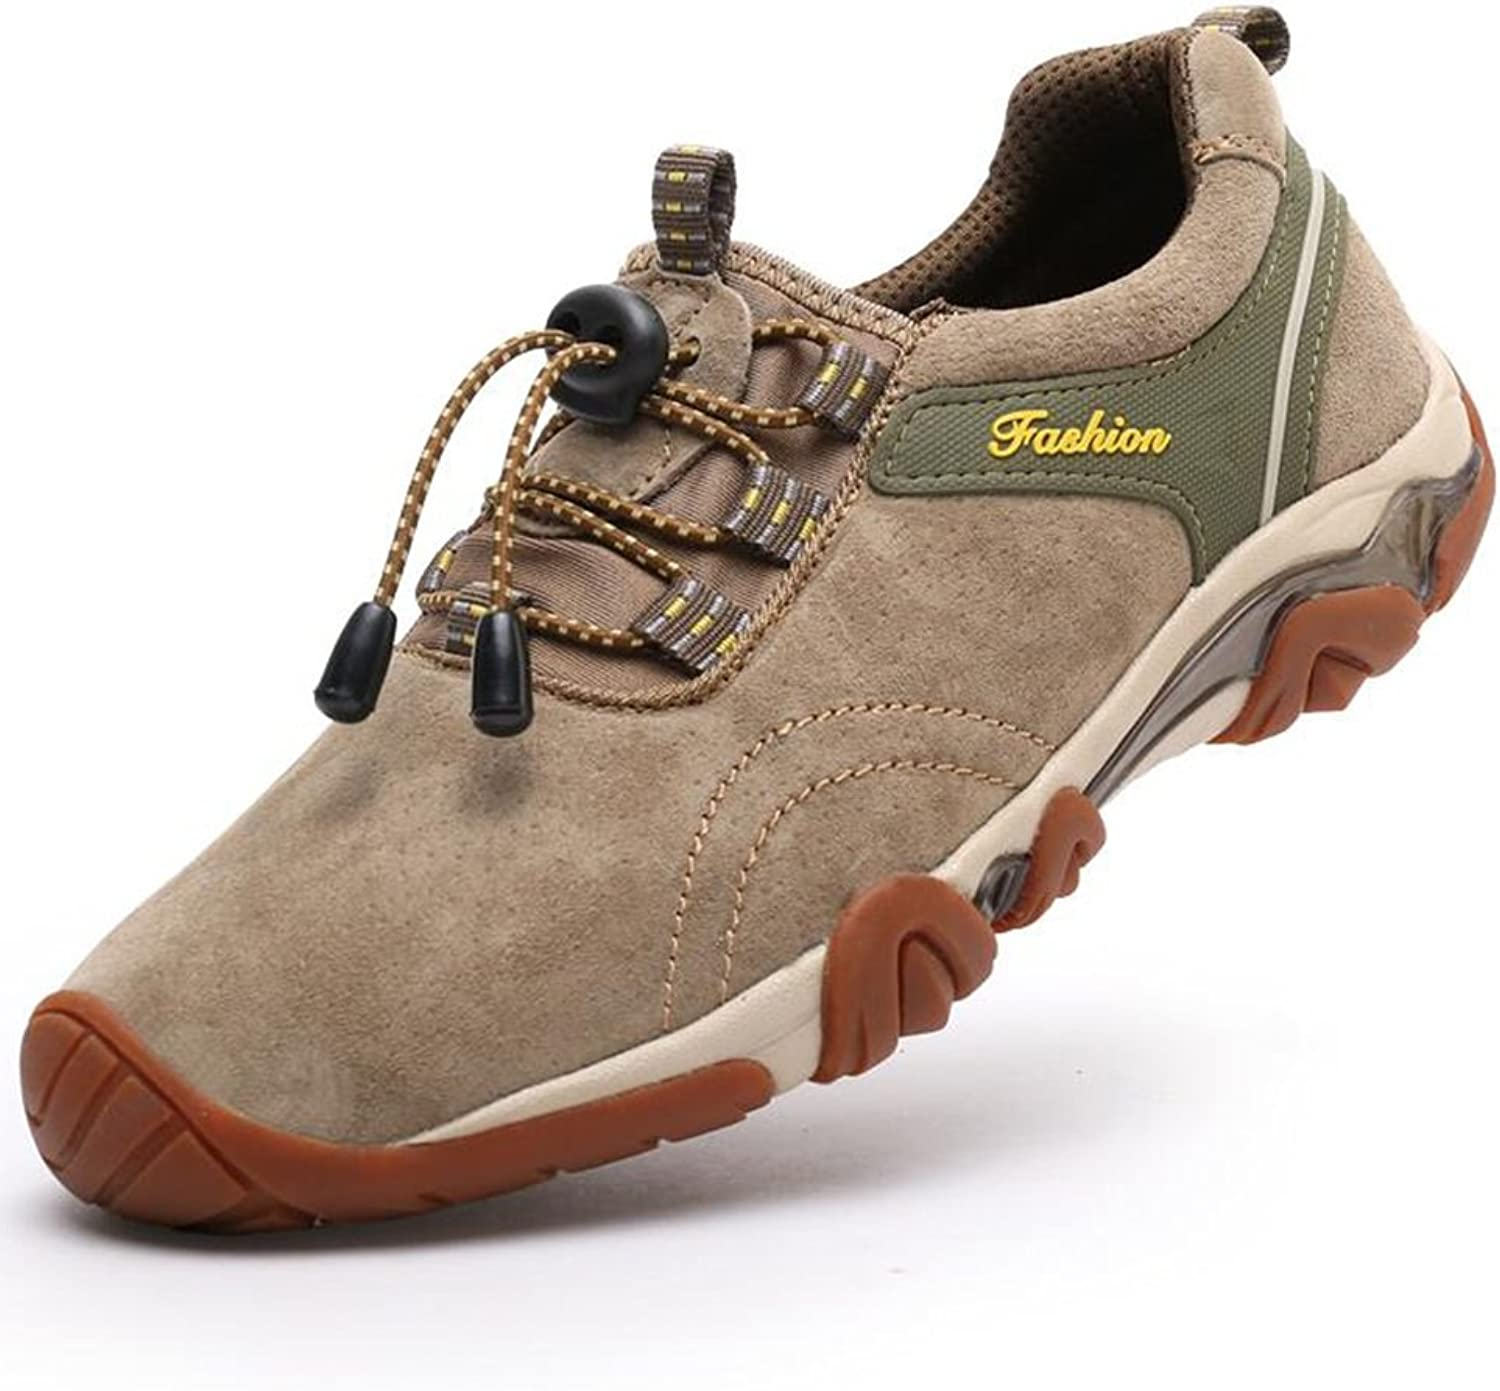 SUN Hiking shoes Outdoor Casual Sports shoes Elderly Father 30-40-50 Years Old (color   5, Size   EU39 UK6.5 CN40)